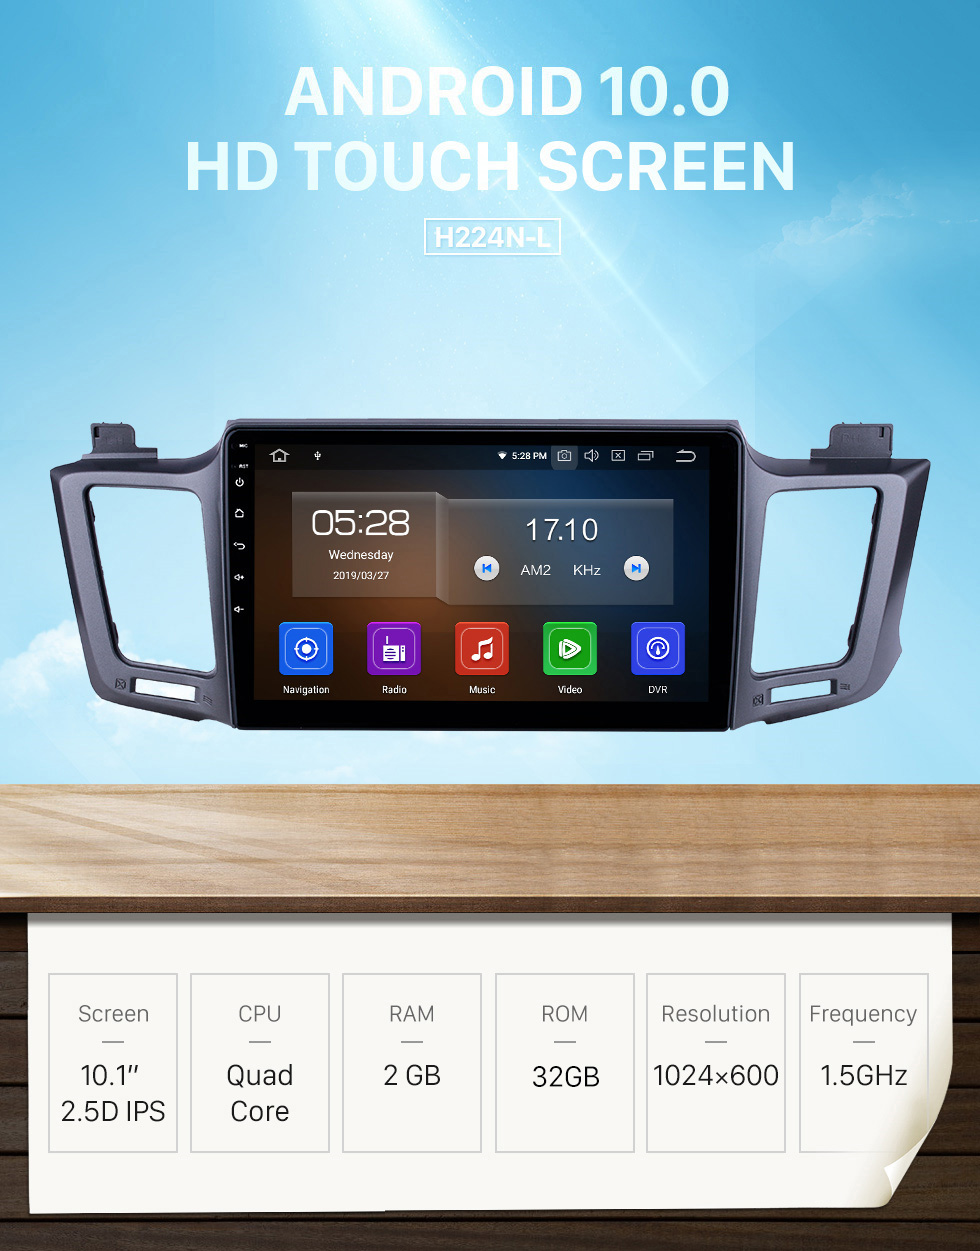 Seicane 10.1 inch Android 10.0 GPS Navigation Radio for 2013-2016 Toyota RAV4 LHD with HD Touchscreen Carplay Bluetooth WIFI USB AUX support Mirror Link OBD2